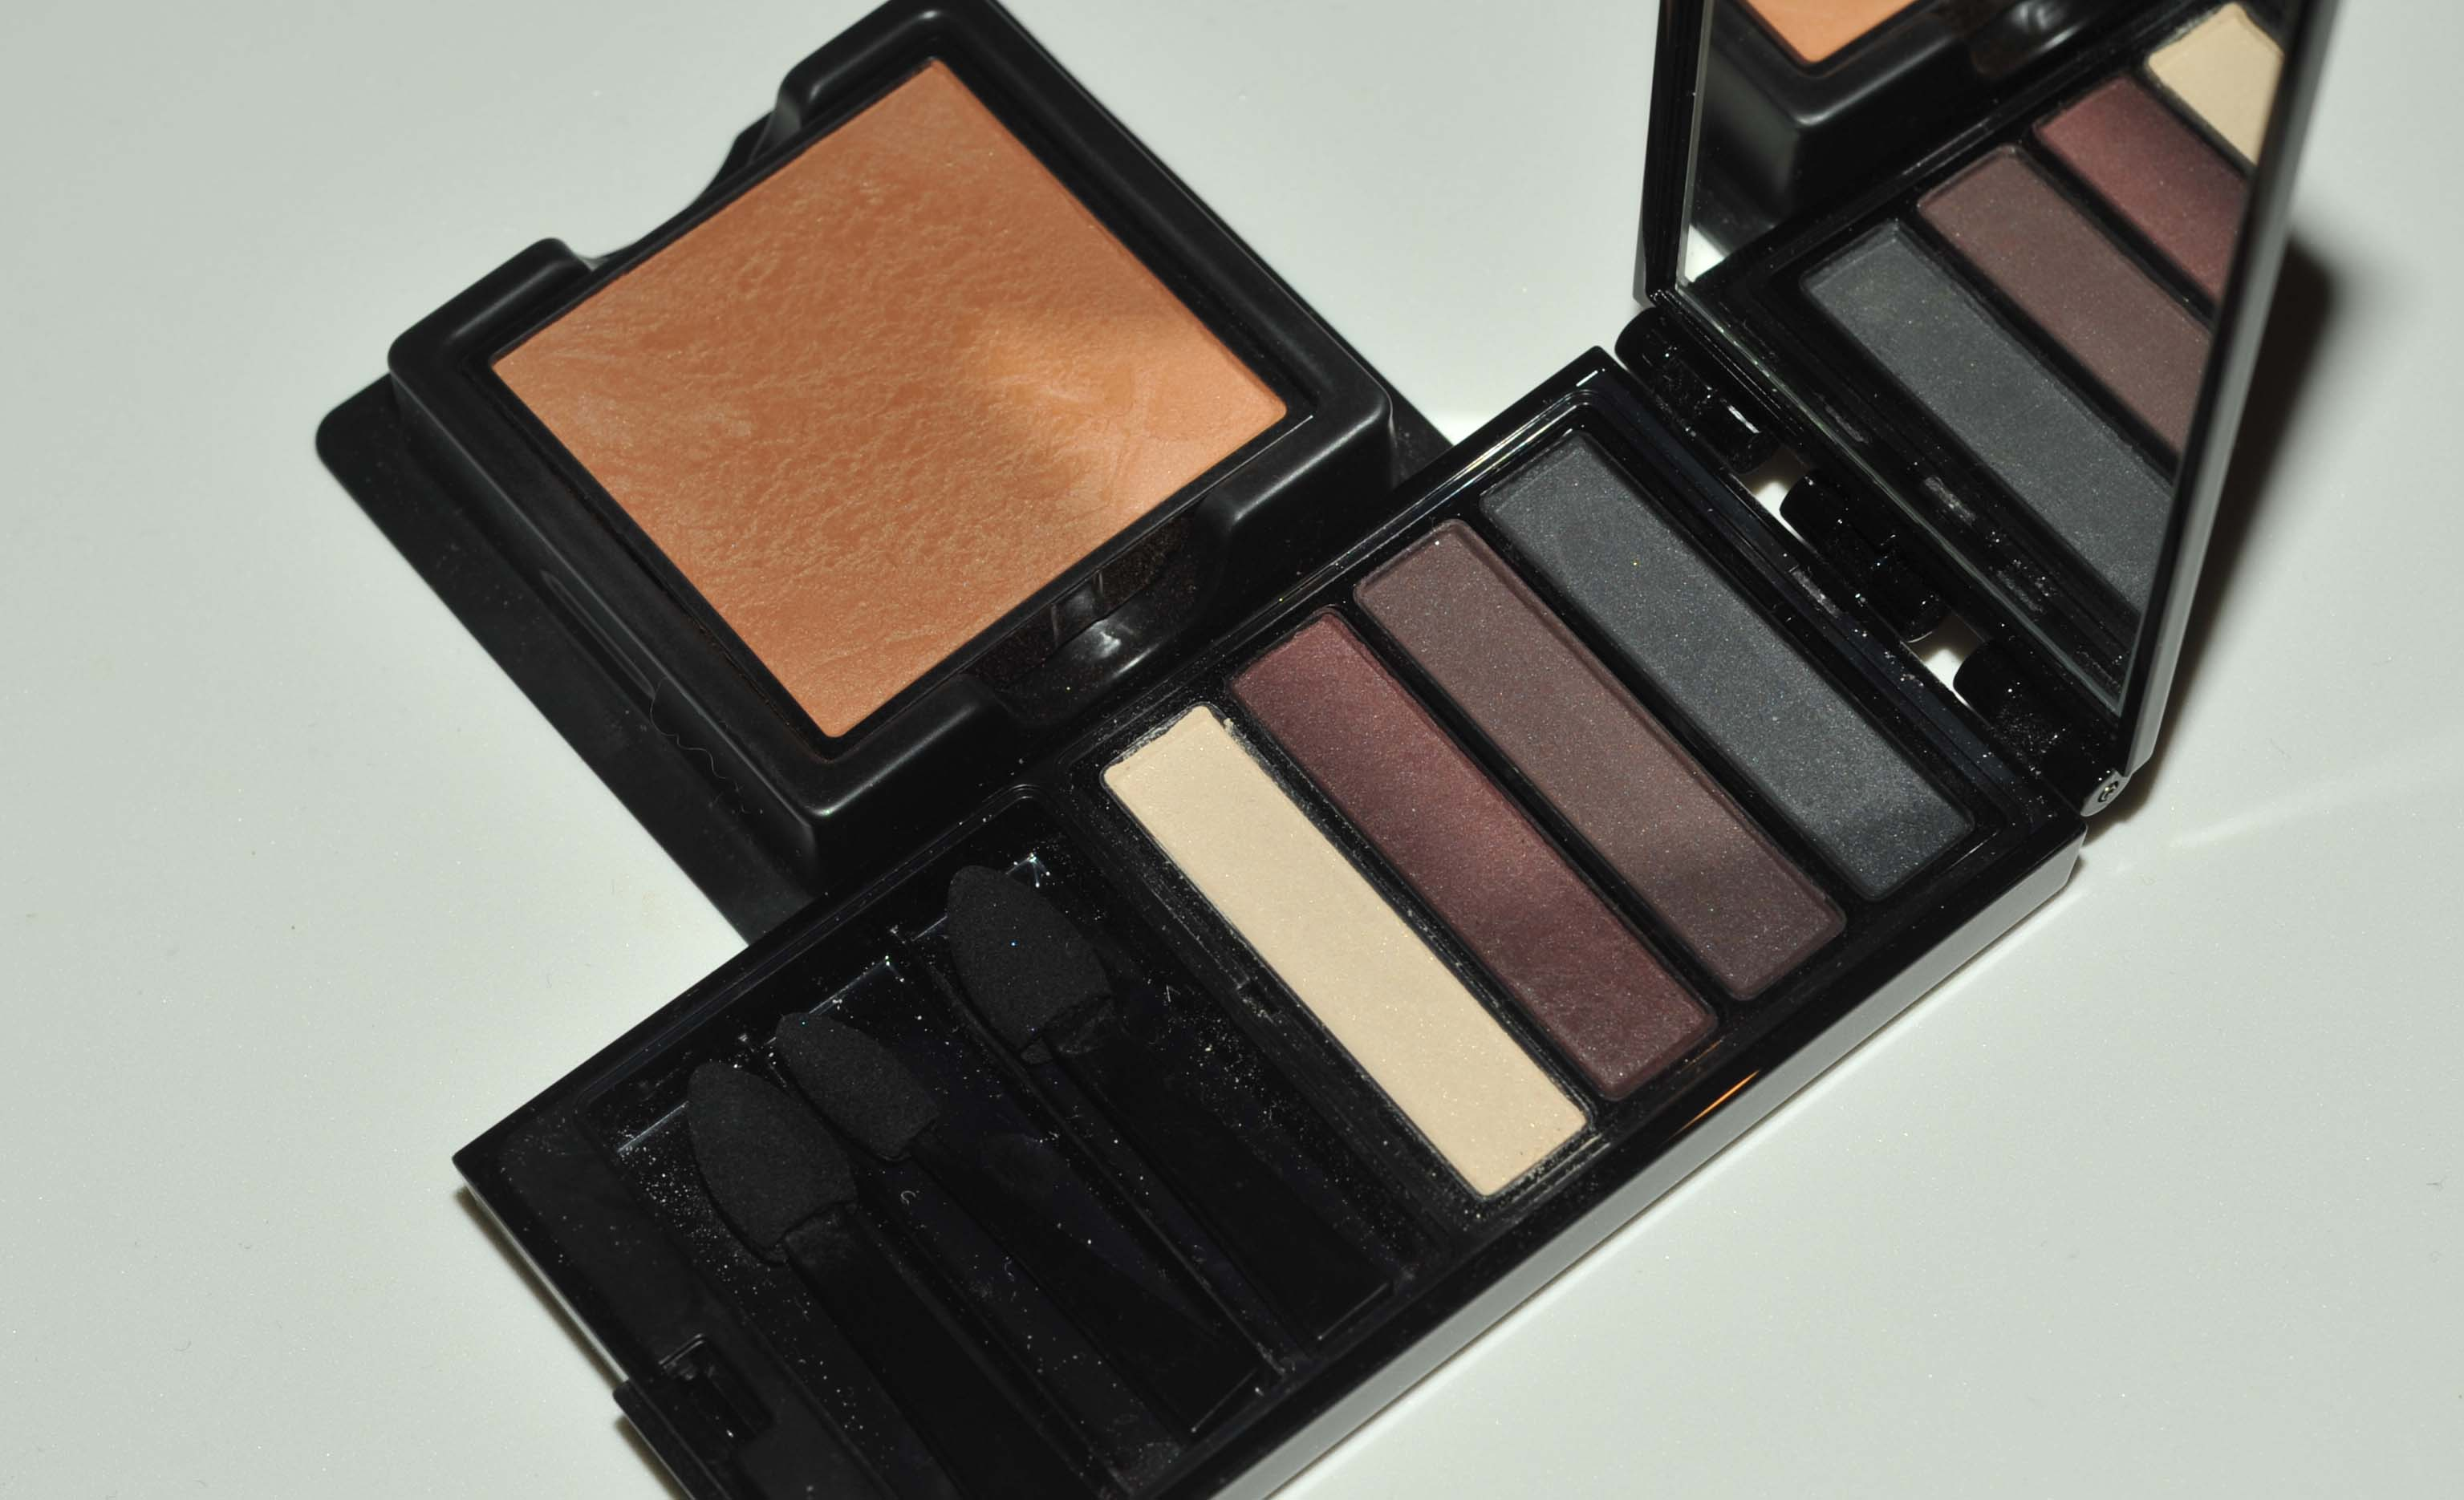 Serge Lutens Blusher And Eyeshadow Palette Sweet Makeup Temptations Inez Fine Line Eyeliner Black I Dont Even Know What Shade This Is On The Website Its Mentioned They Have 1 2 Looks More Like Number But Am